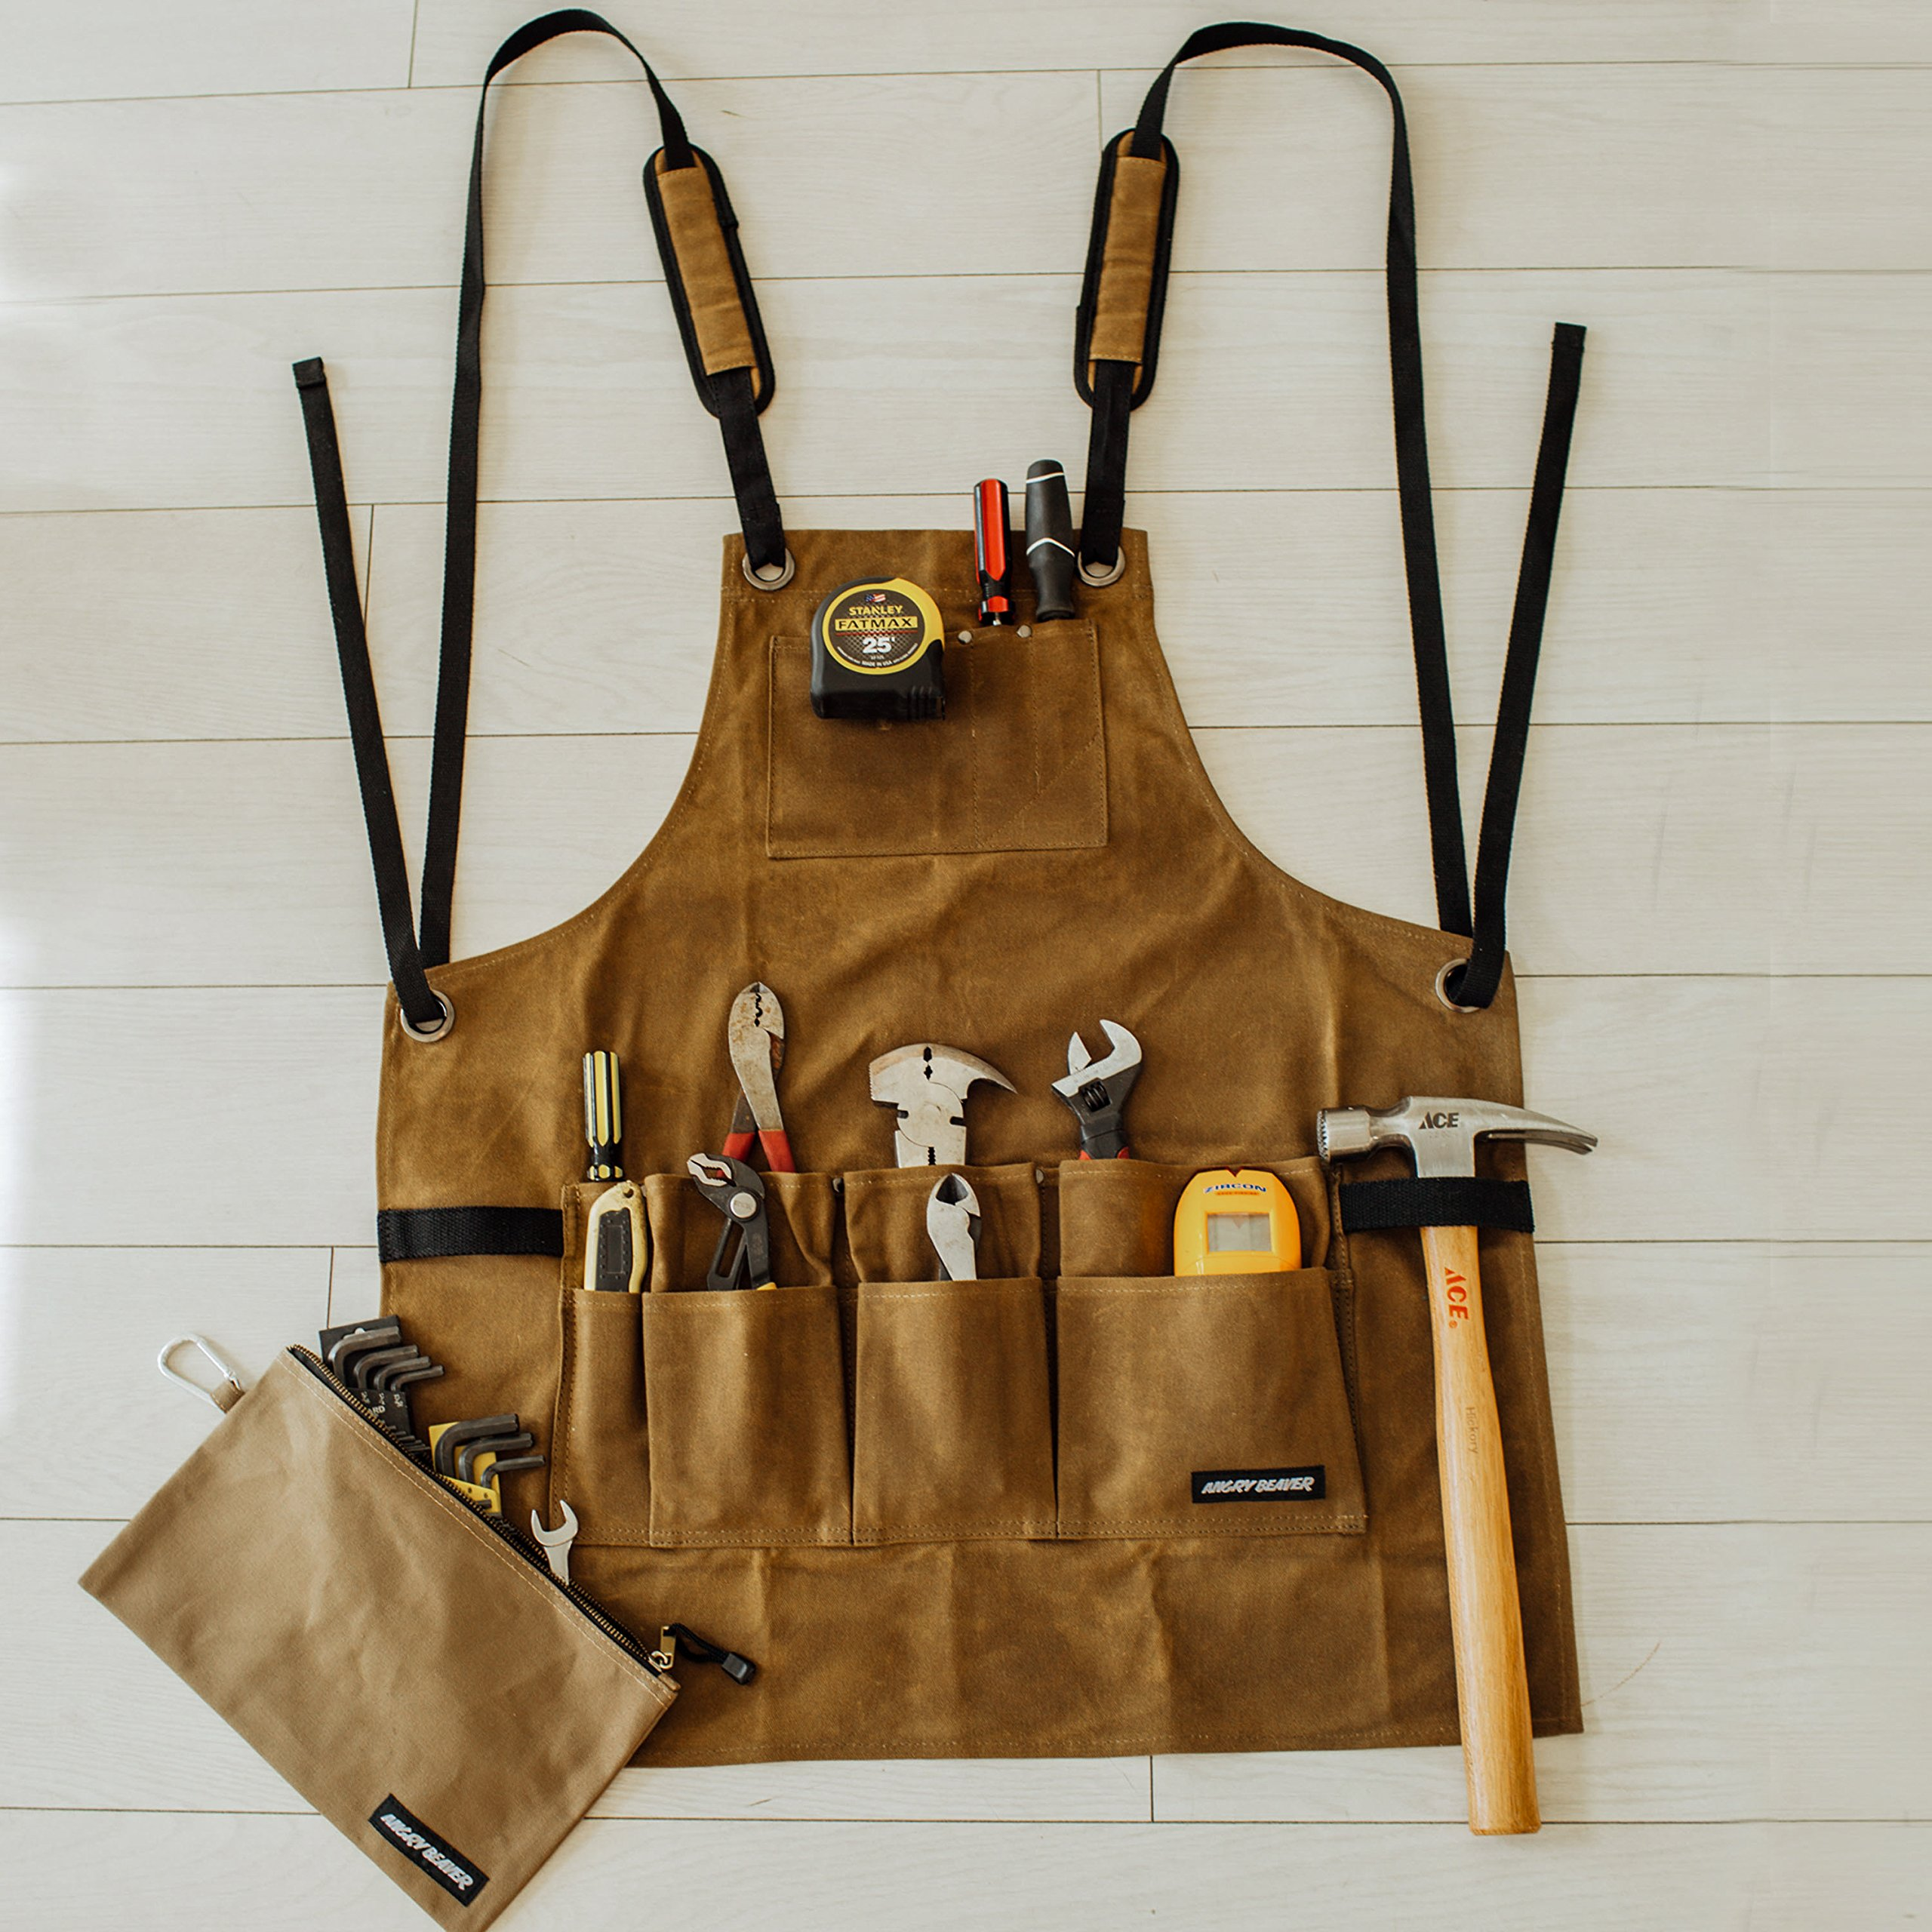 Work Shop Apron by Angry Beaver   BONUS Canvas Zipper Tool Pouch   Heavy Duty Utility Waxed Canvas Bib Apron with Tool and Chest Pockets   Tool Apron Cross-Back Straps & Adjustable M to XXL by Angry Beaver (Image #2)